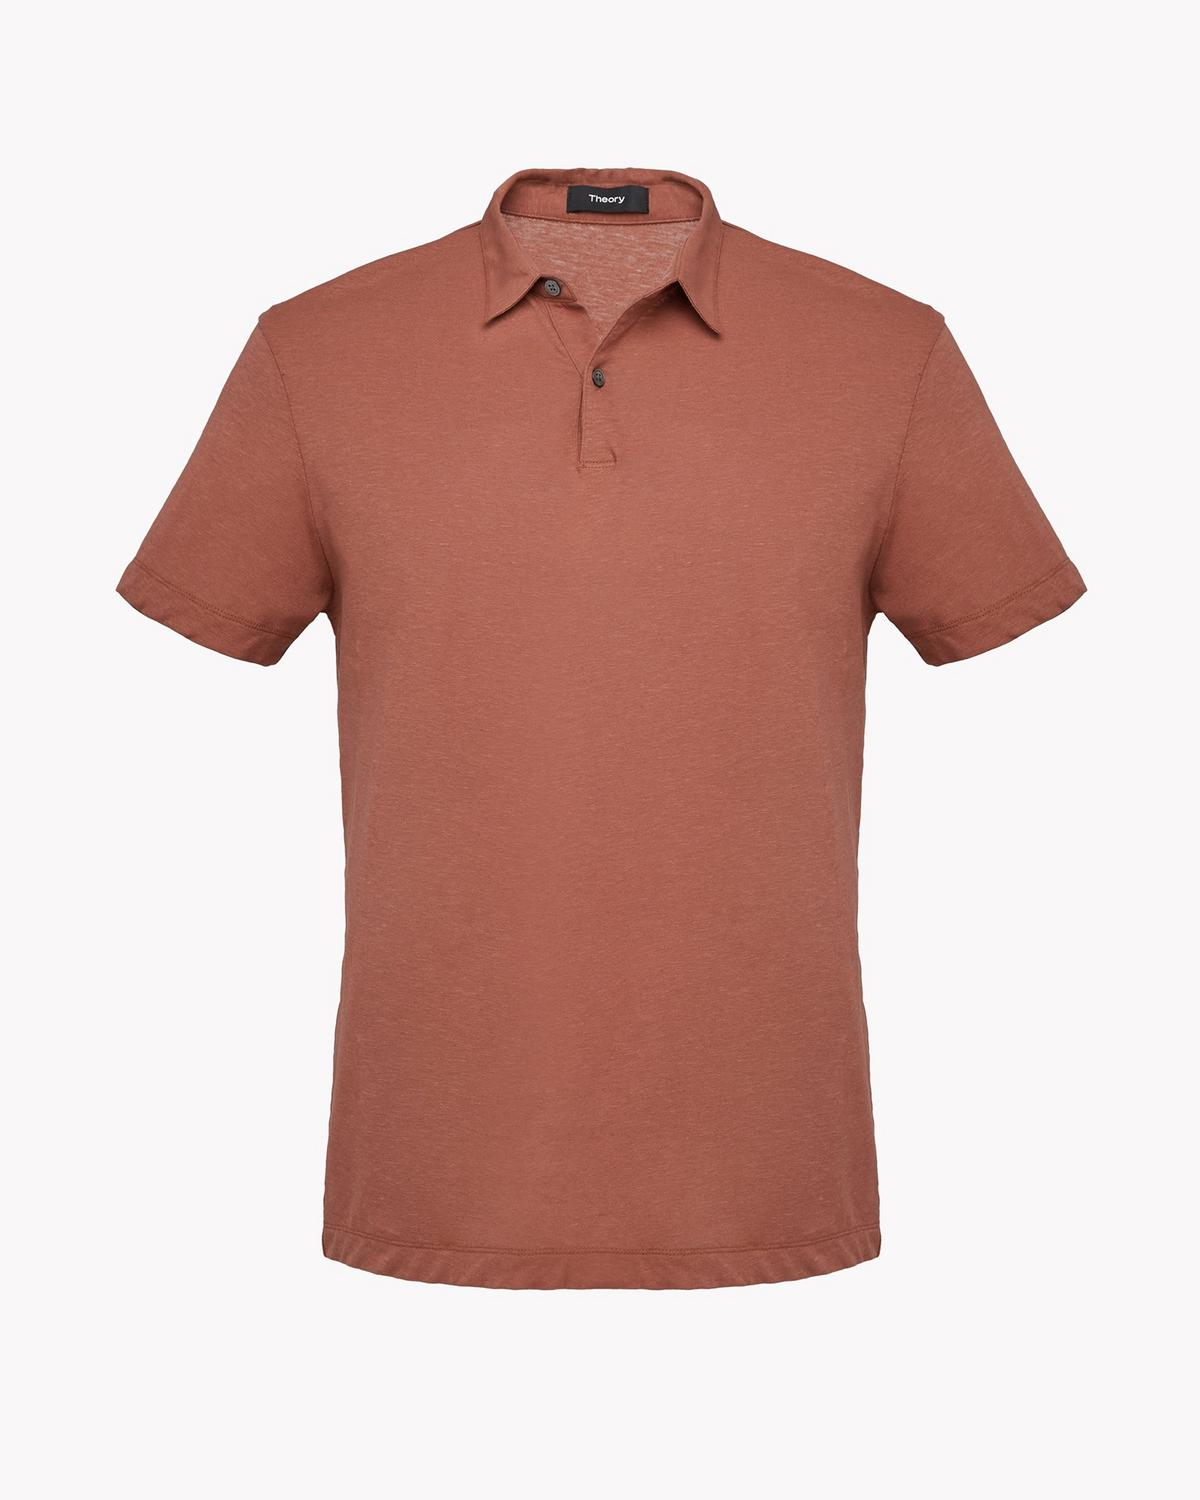 Cotton Linen Polo Theory